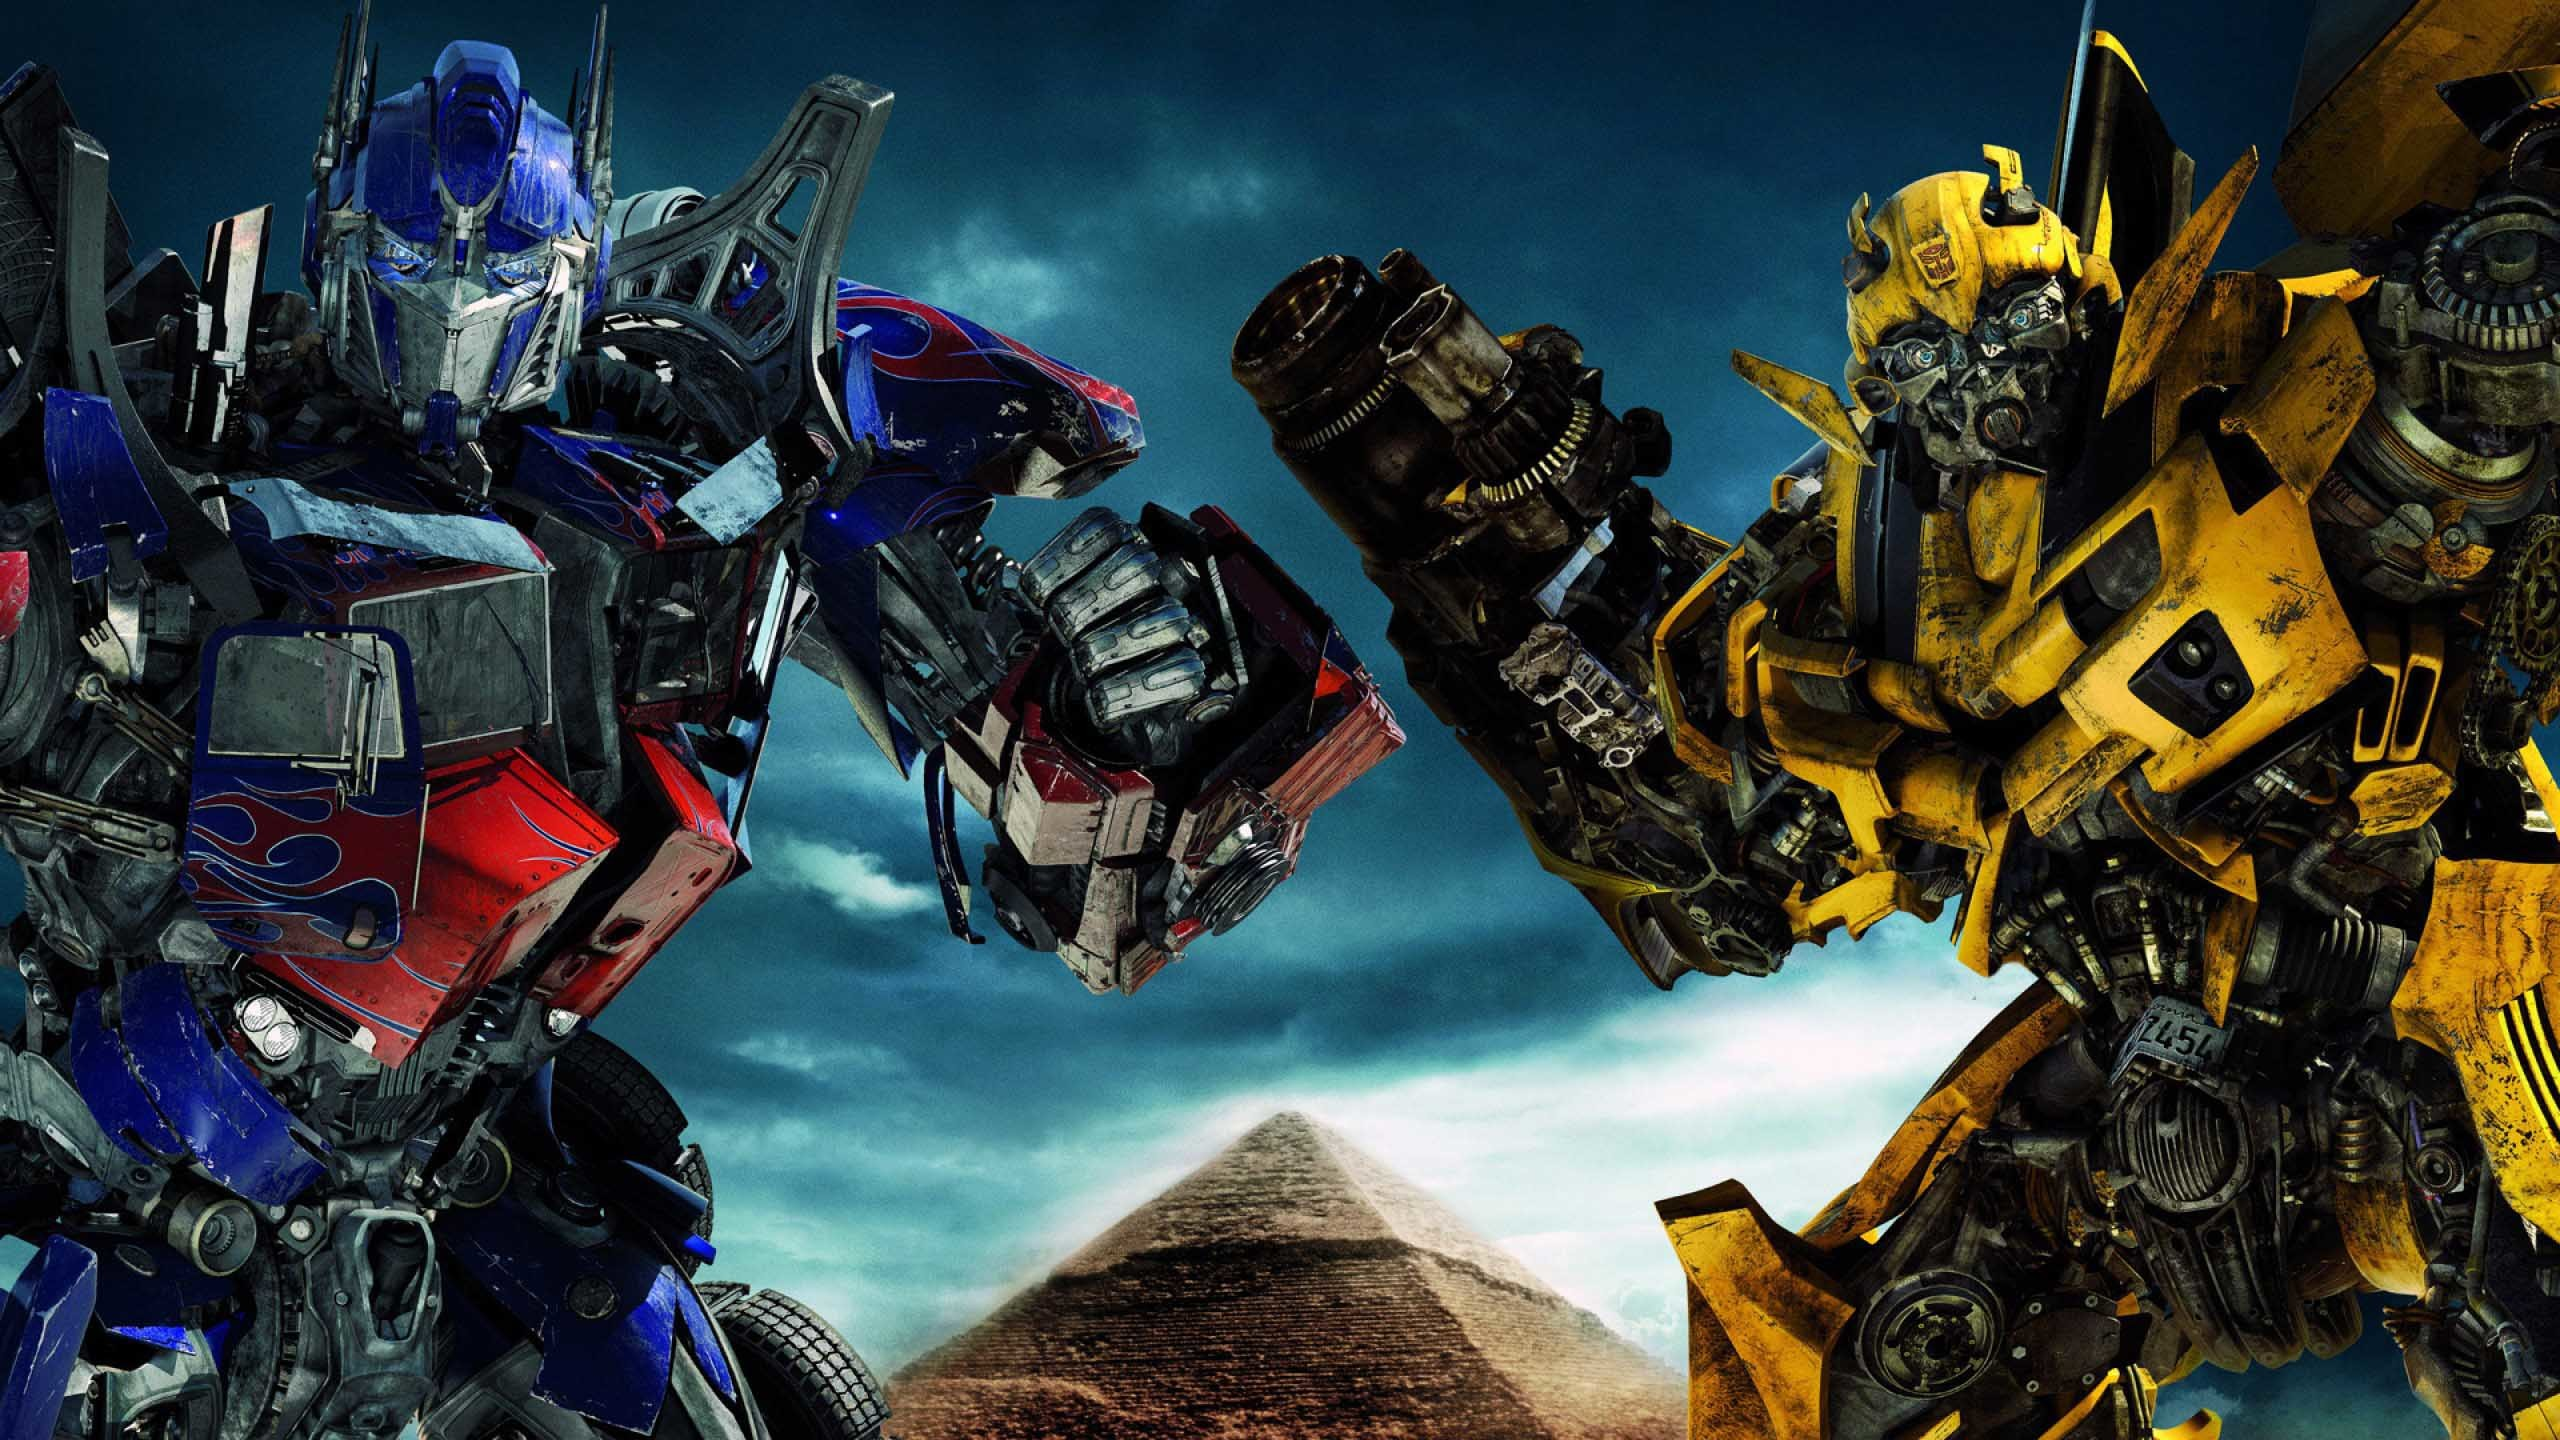 transformers 5 full movie free download